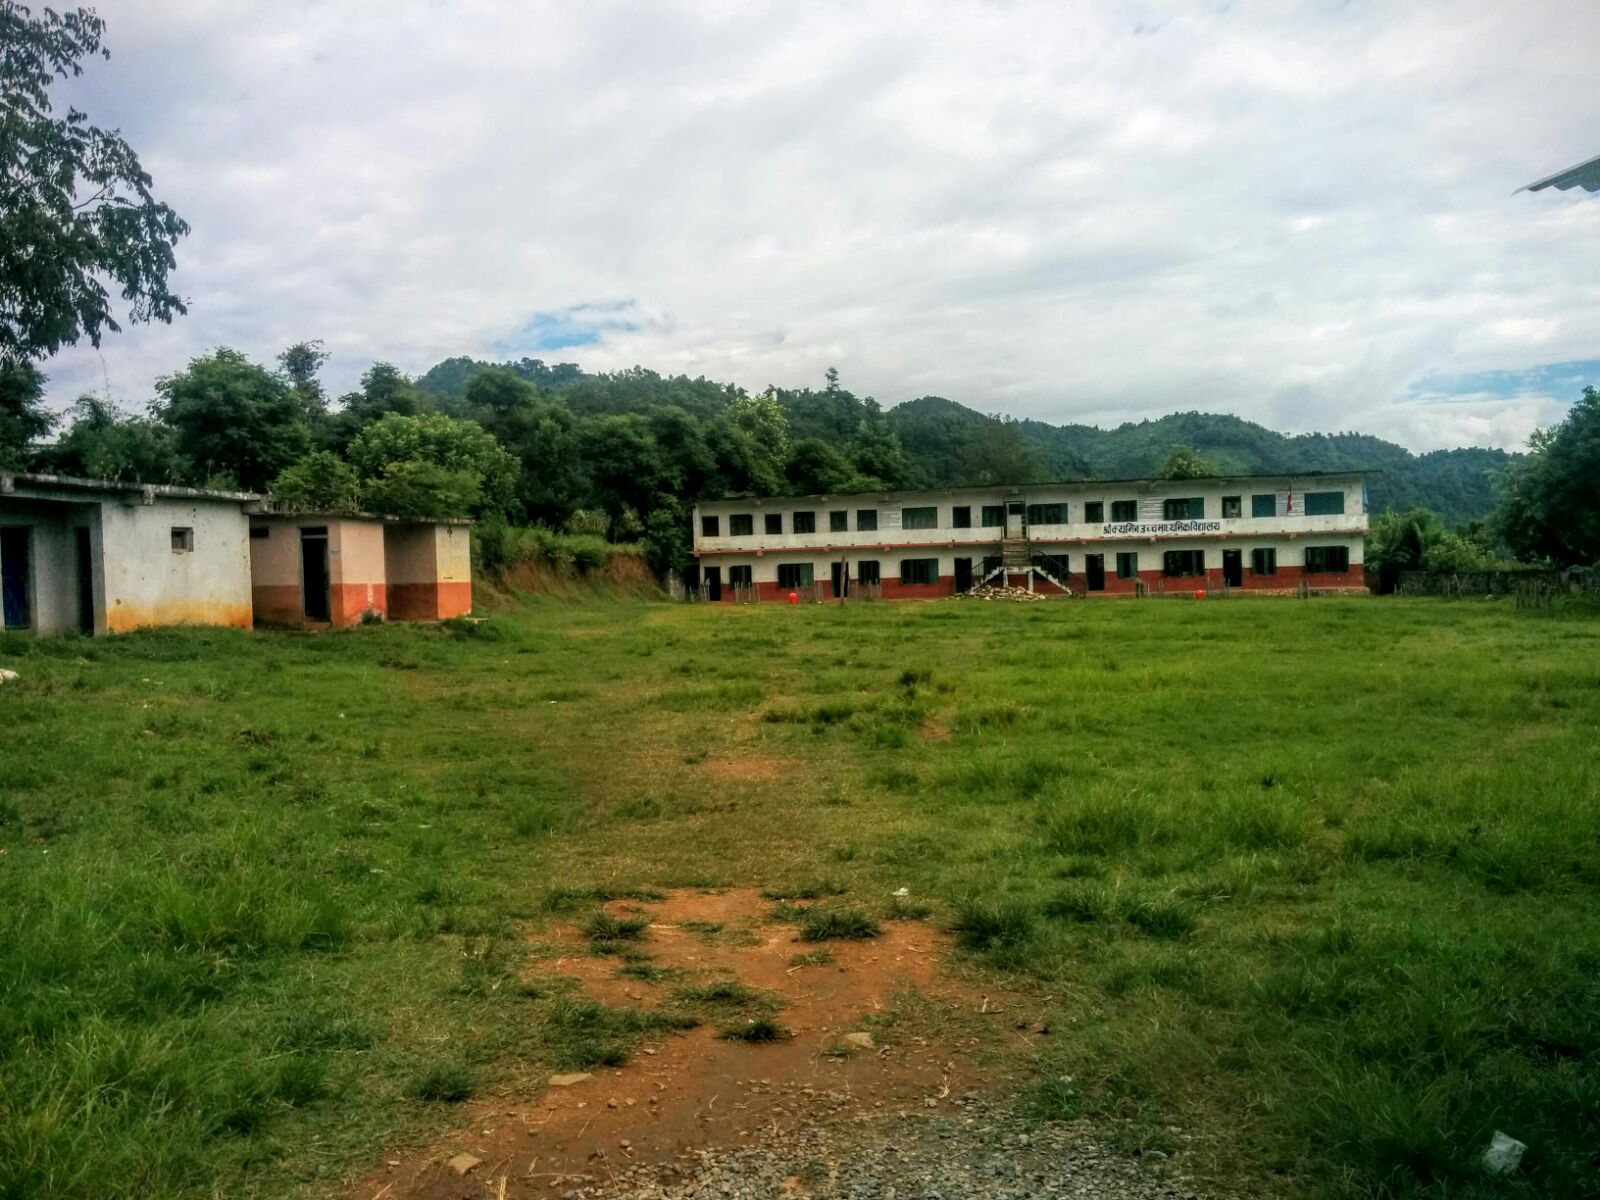 New project: 4 new classrooms for Kyamin School